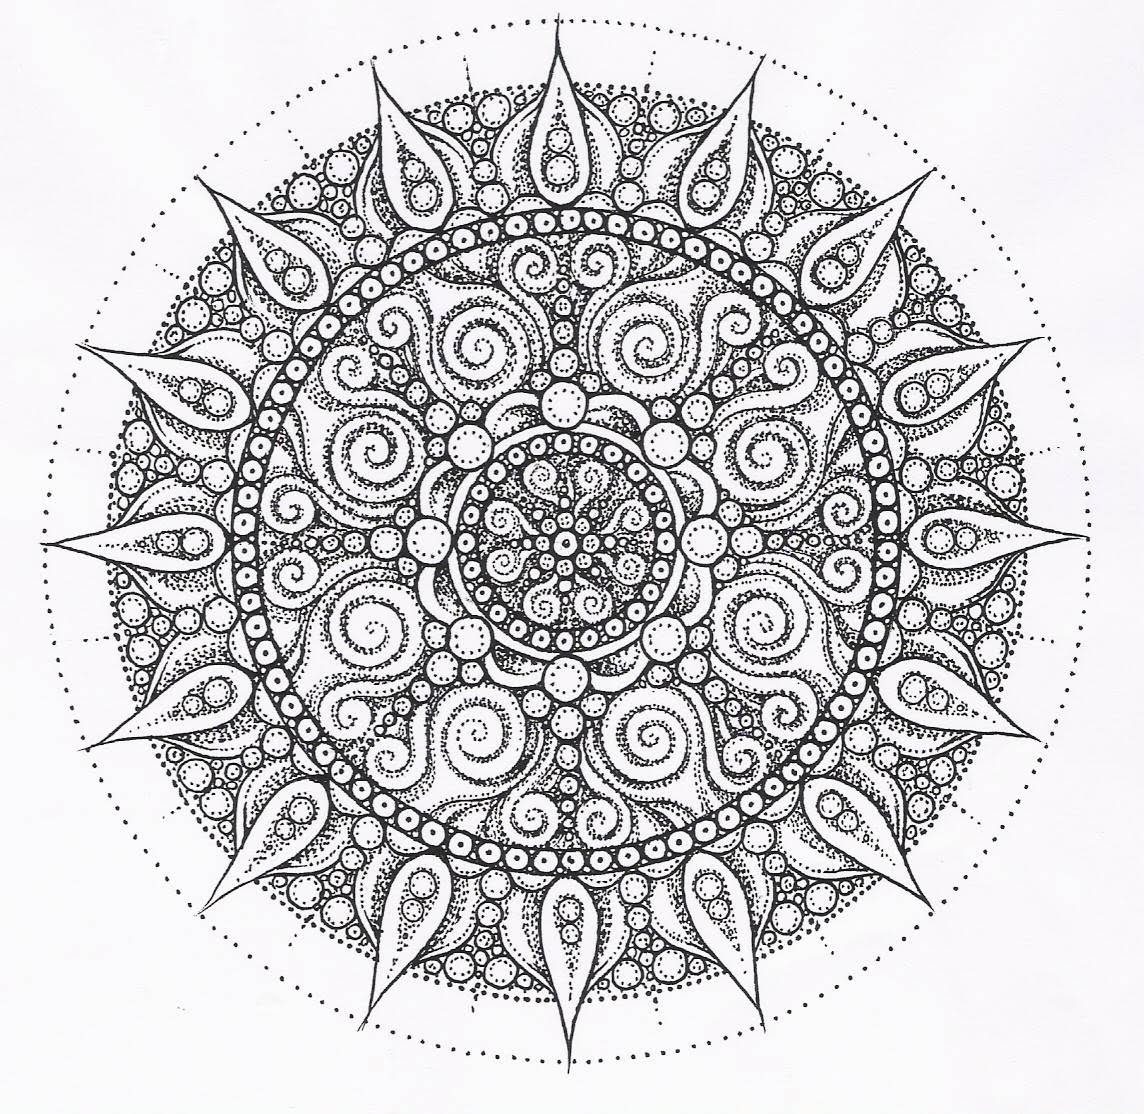 mandala coloring pages for adults - Design Coloring Books Mandala Coloring Books for Adults